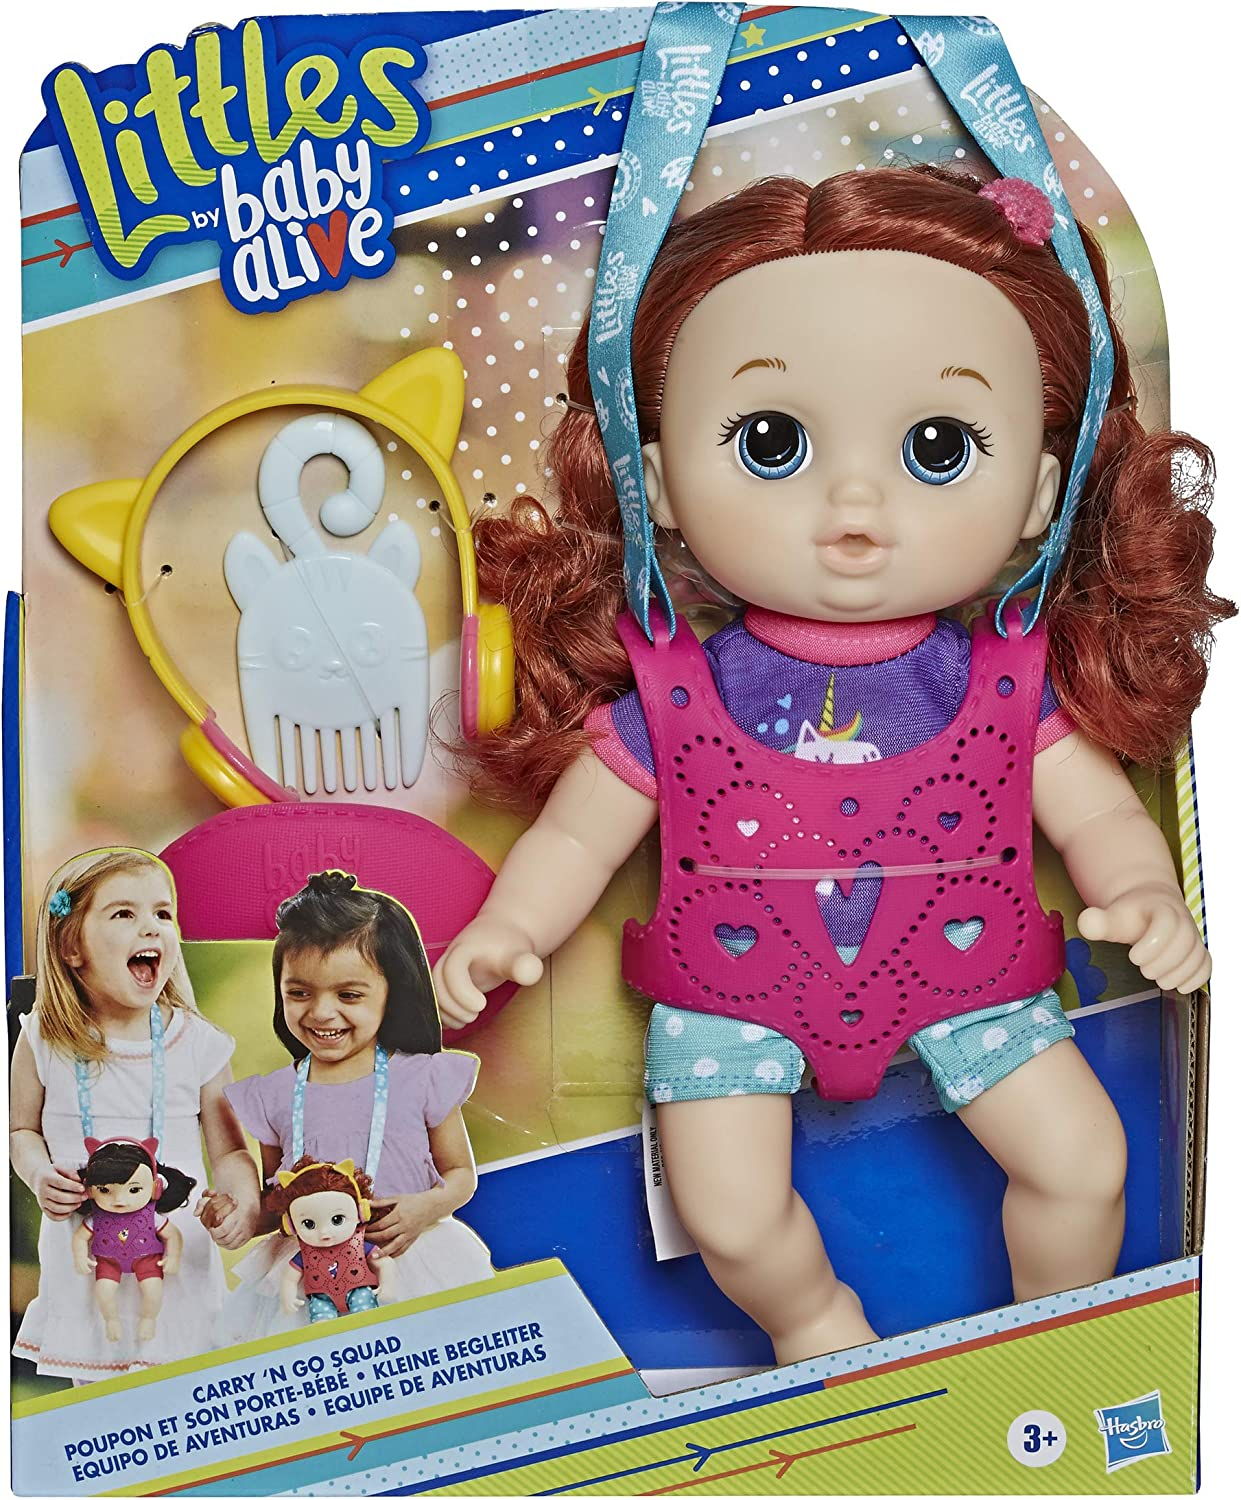 Littles by Baby Alive, Carry 'N Go Squad, Little Zoe, Red Curly Hair Doll, Carrier, Accessories, Toy For Kids Ages 3 years & Up